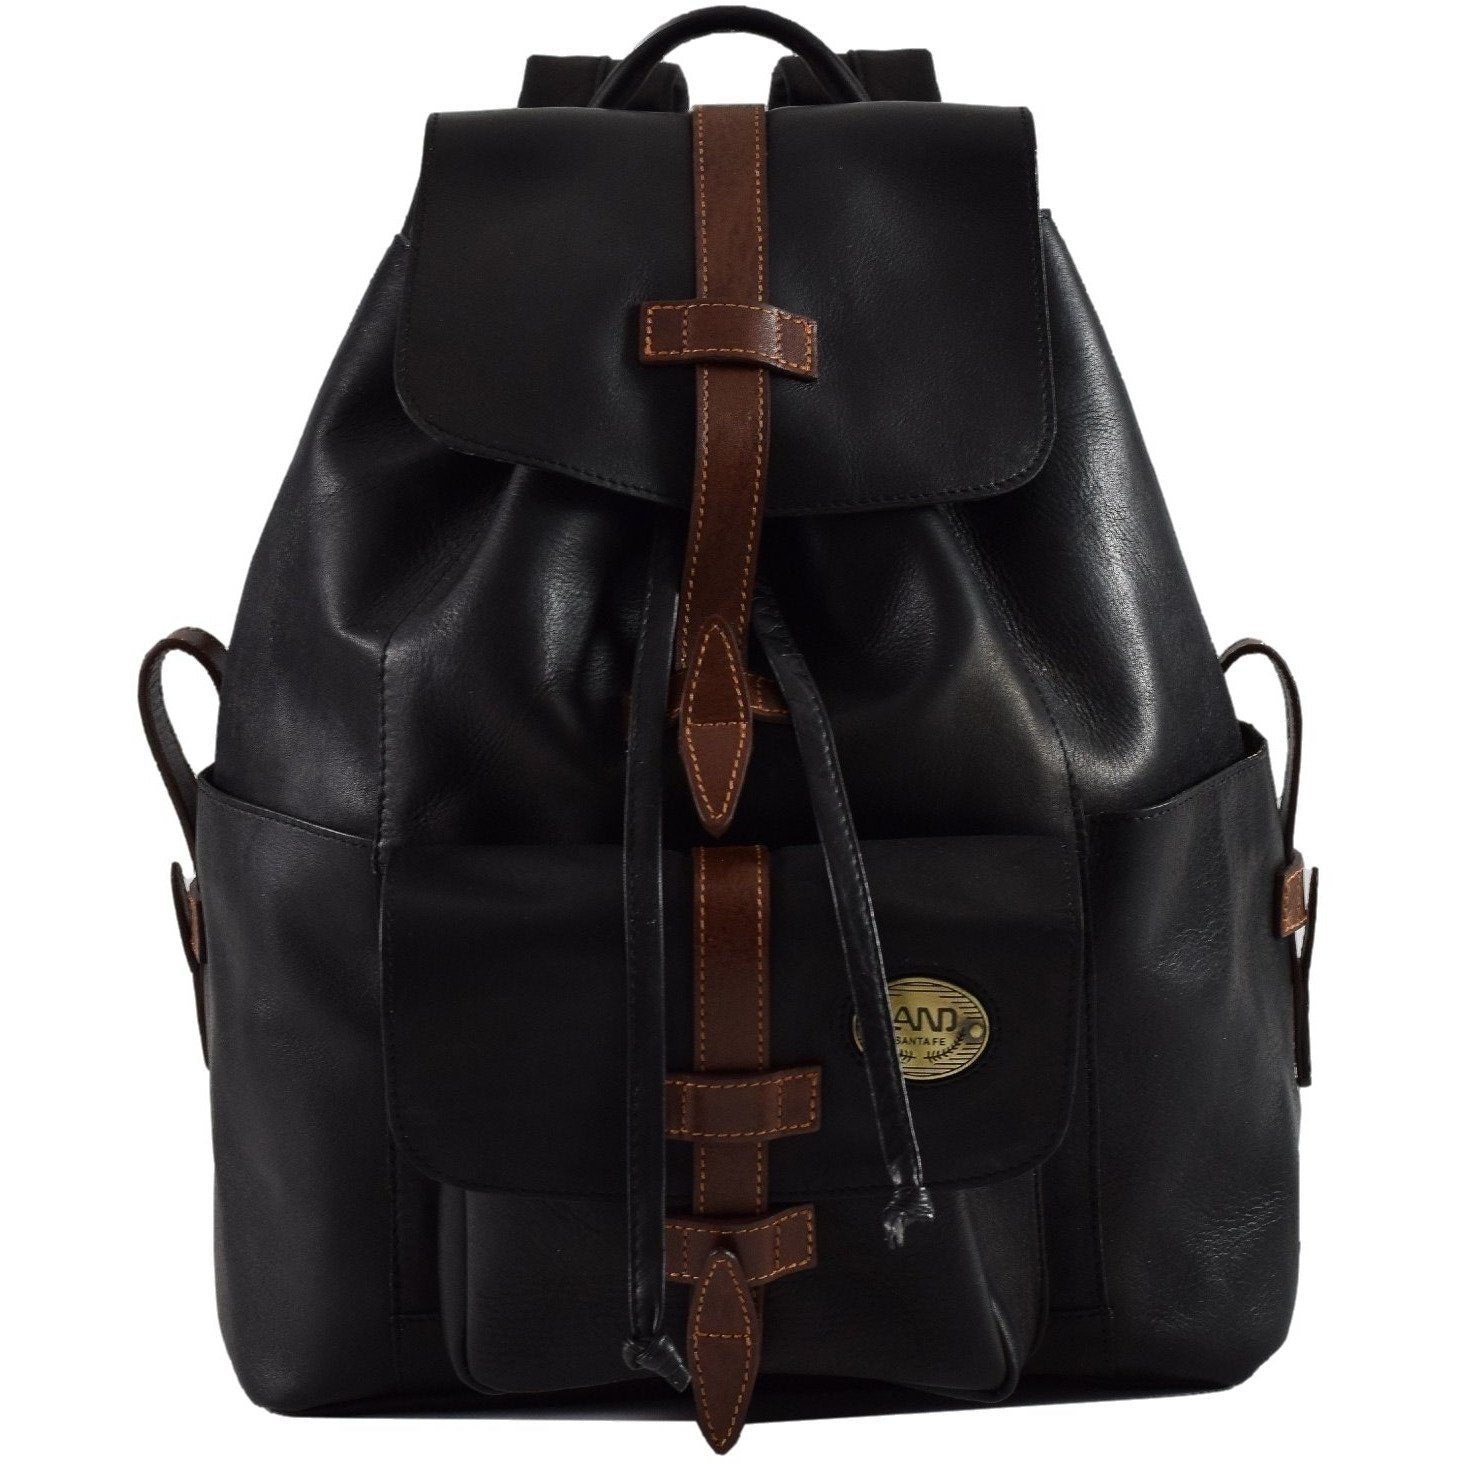 Santa Fe Brooklyn Backpack, Backpack | LAND Leather